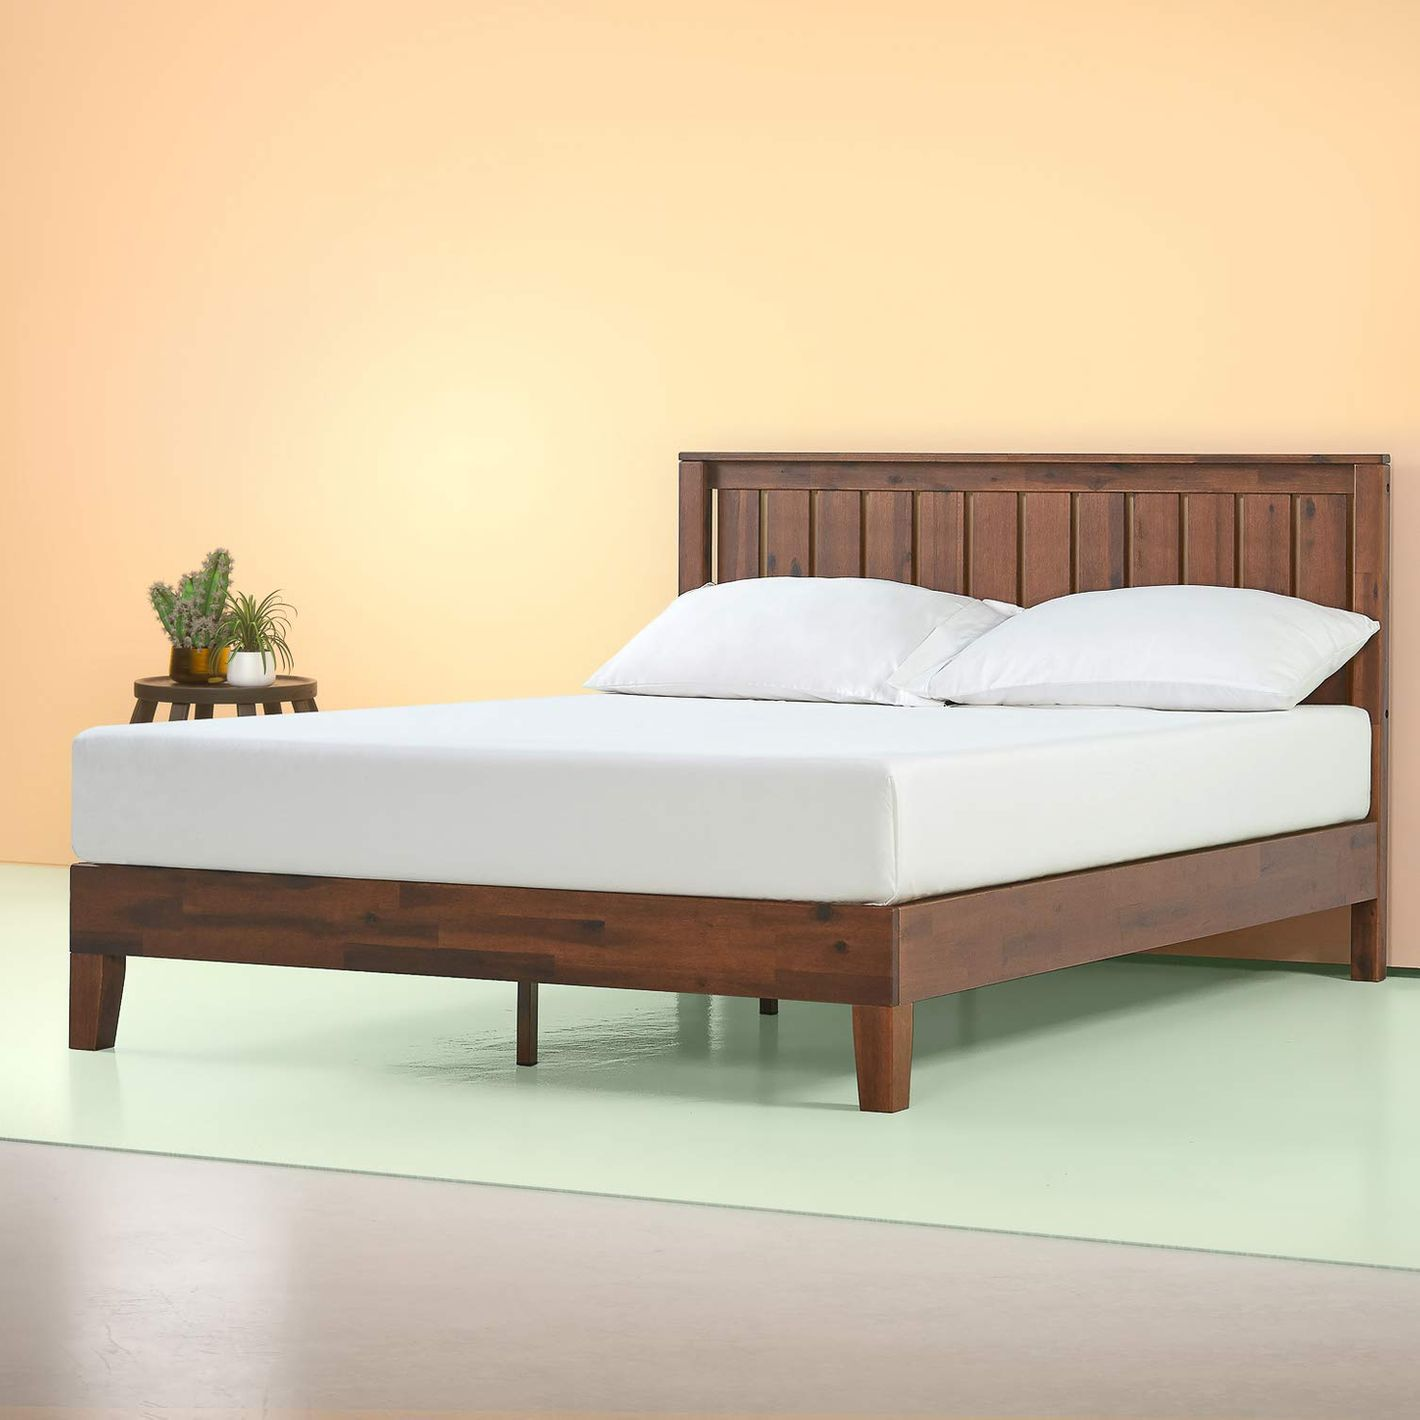 Zinus Vivek 12 Inch Deluxe Wood Platform Bed With Headboard Queen